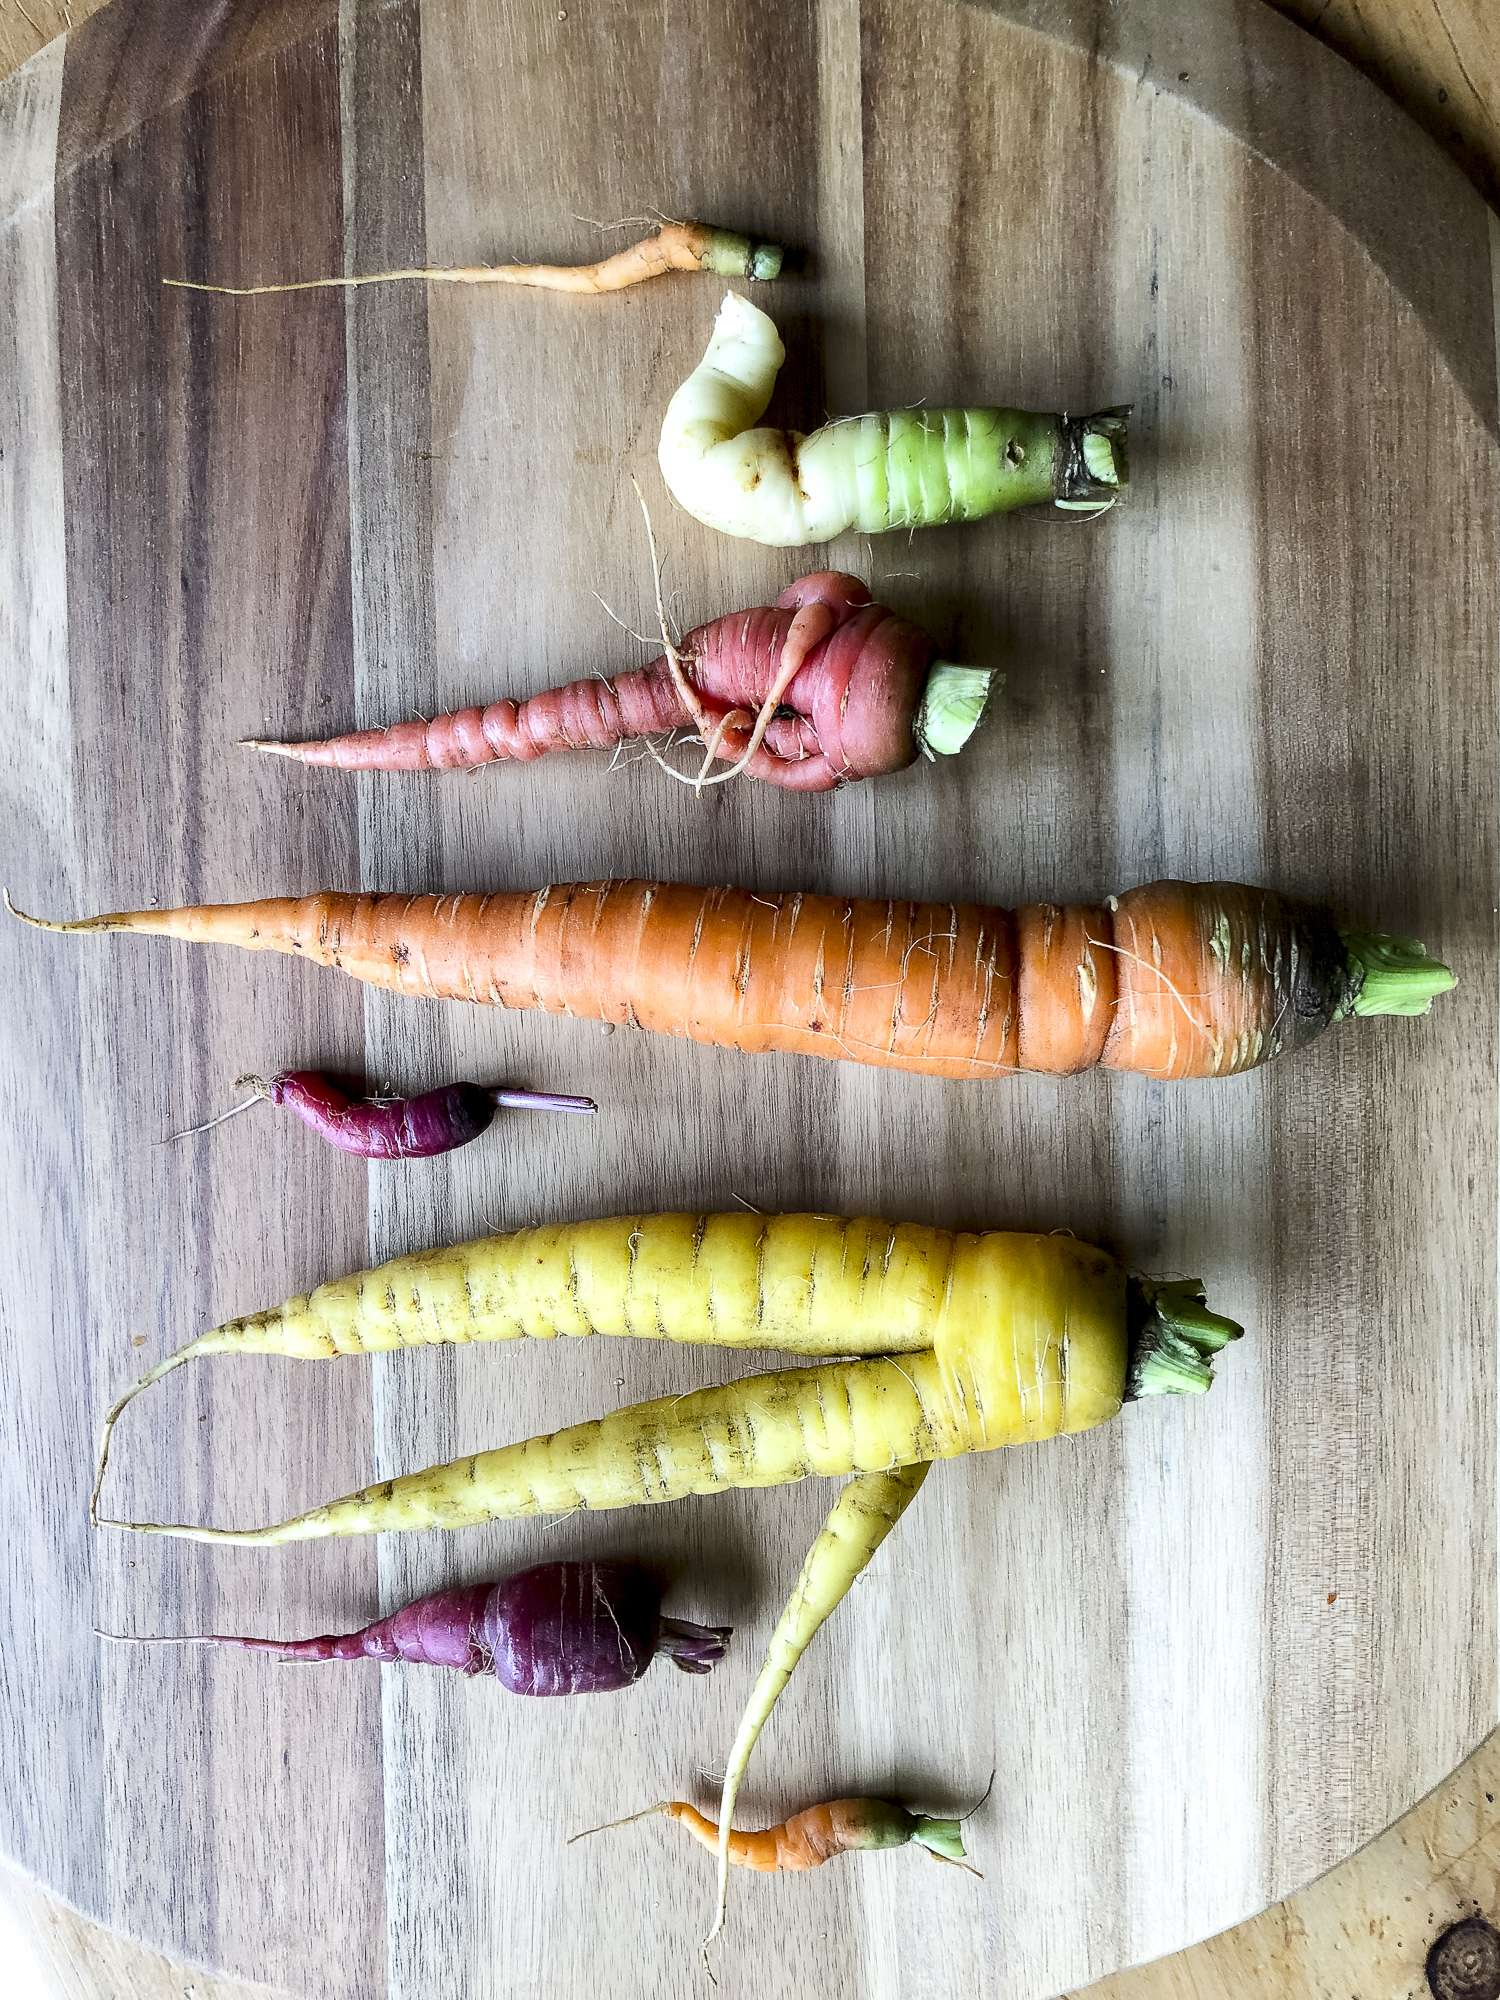 Do you want to grow a vegetable garden? Today I'm sharing my best tips for vegetable gardening for beginners. Avoid these 5 mistakes for a glorious garden. #fromhousetohaven #gardeningtips #beginnergarden #vegetablegarden